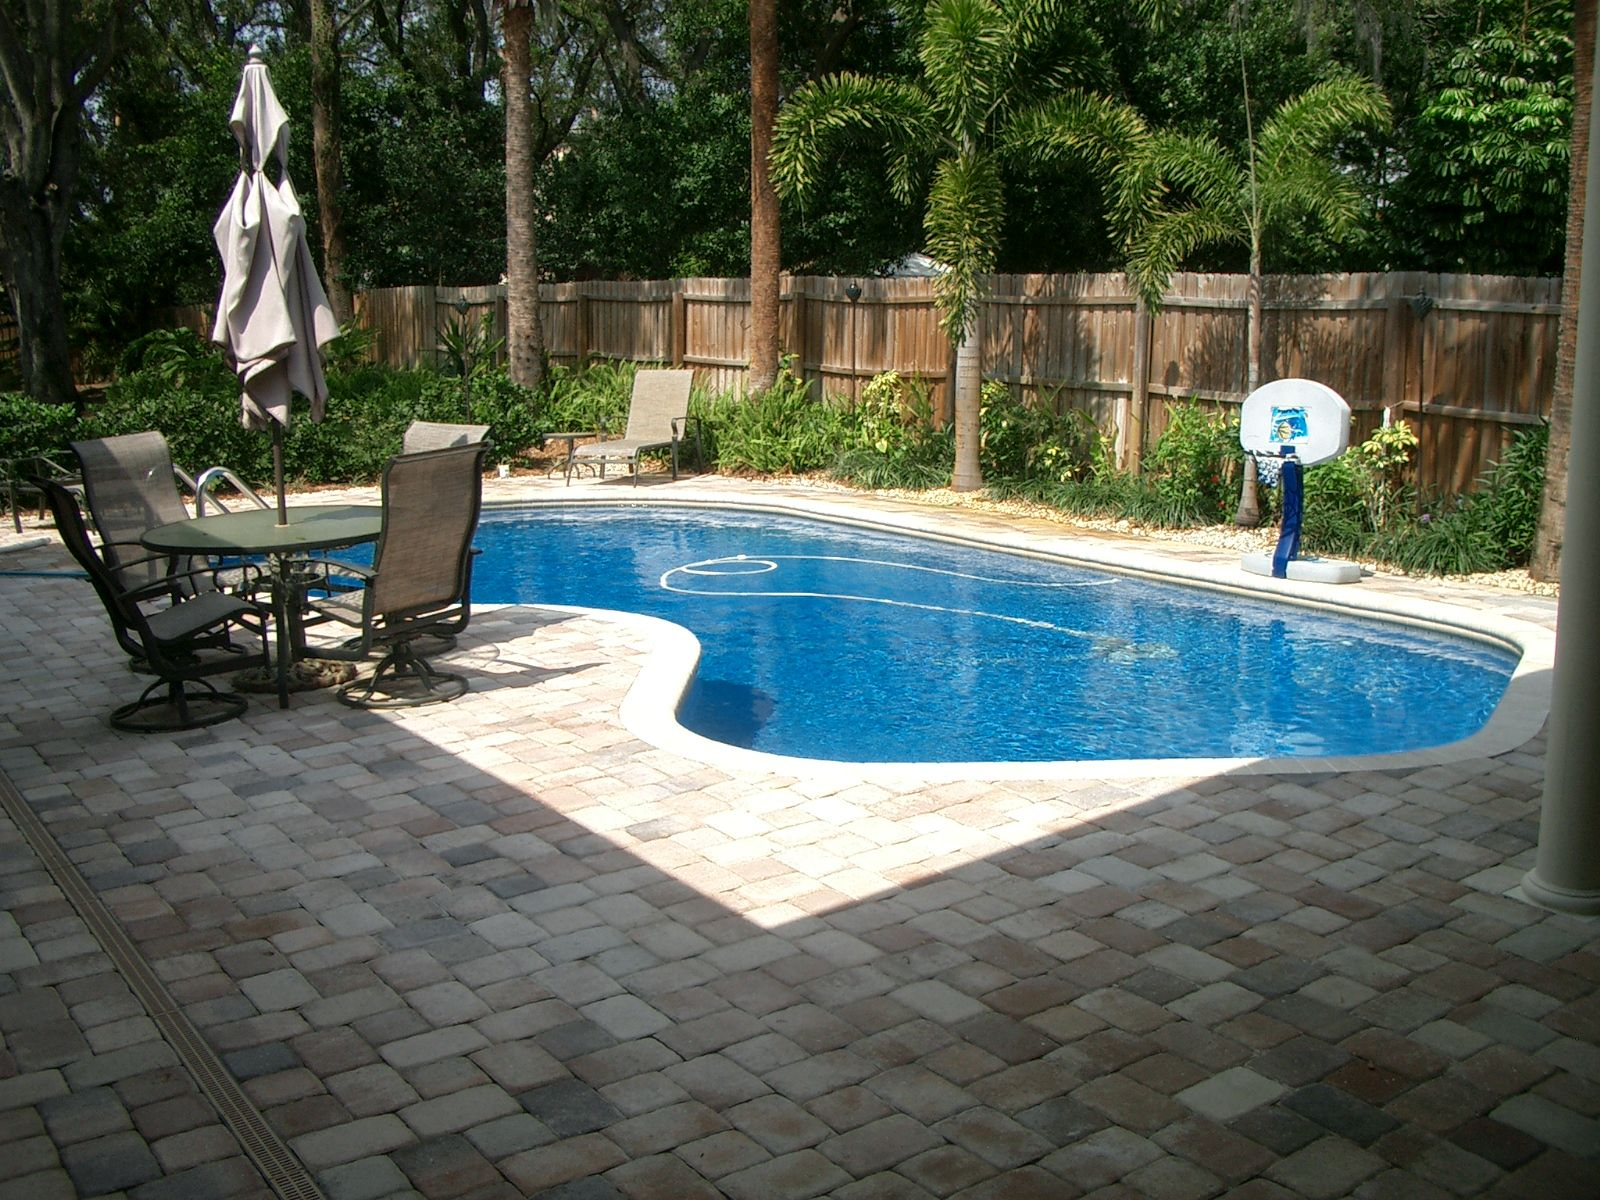 Pool Designs And Landscaping 27 best pool landscaping on a budget |homesthetics images on